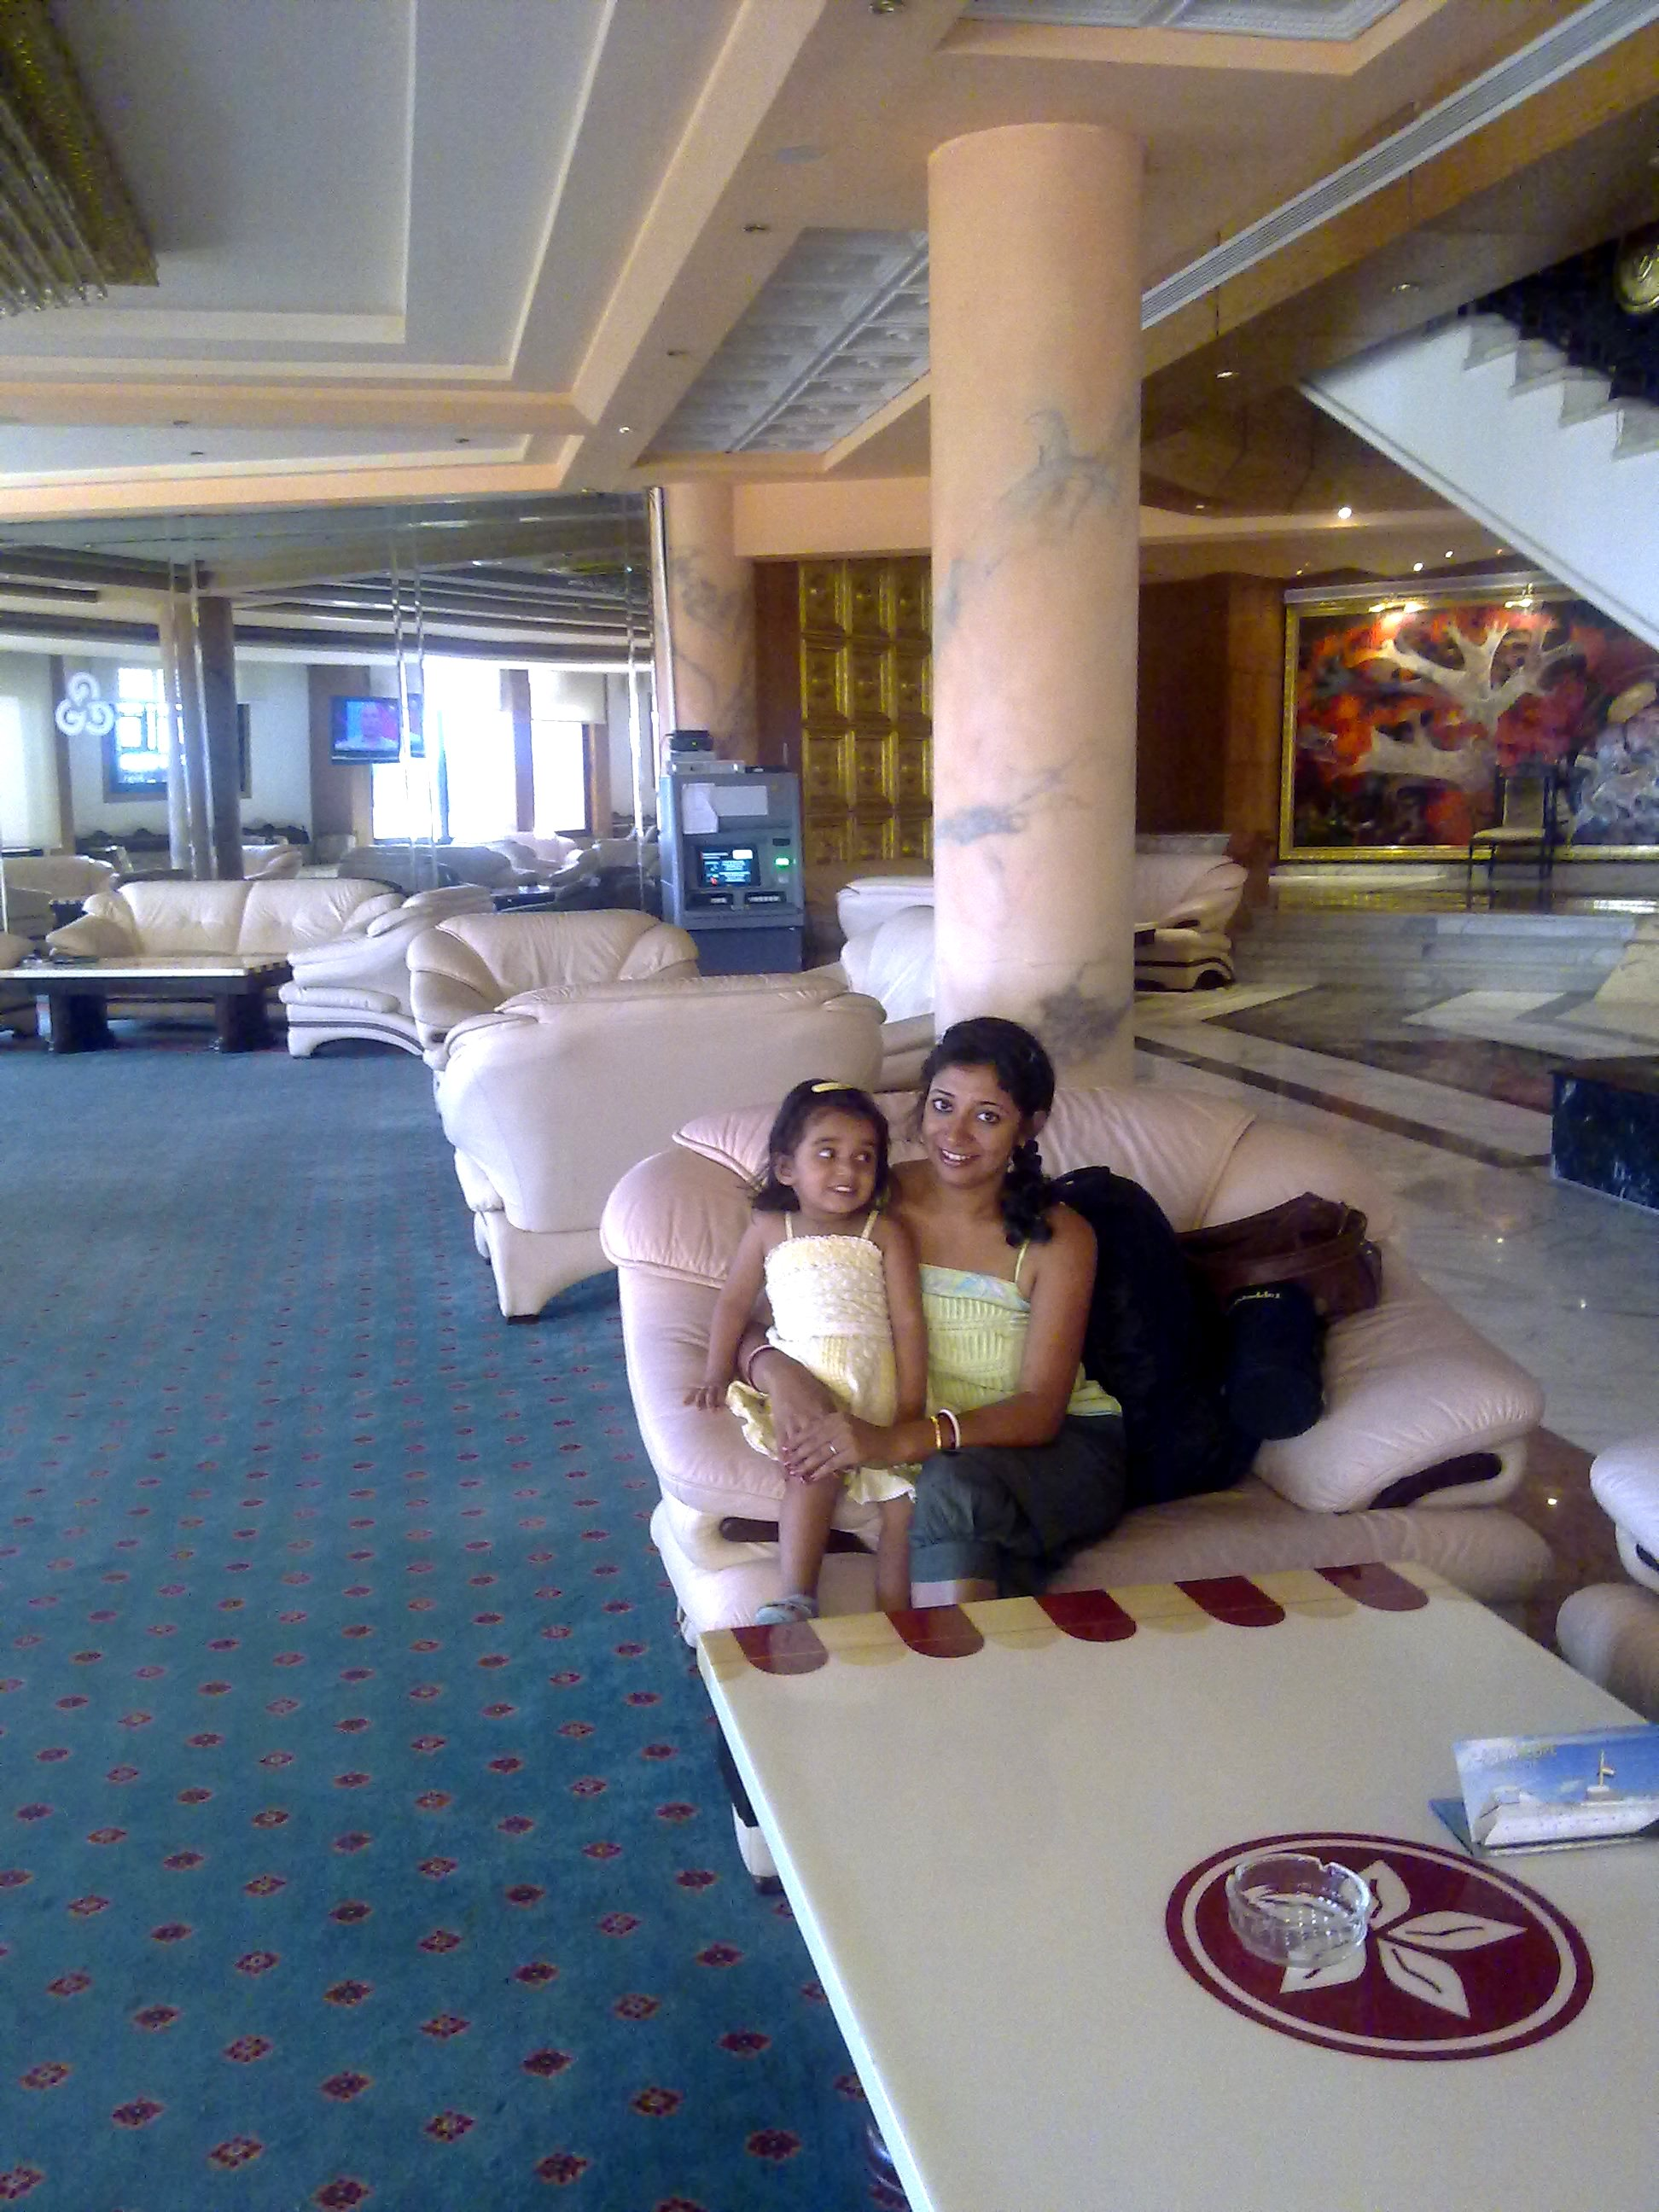 @Paradise Golden 5 Hotel & Beach Resort, Hurghada, Egypt